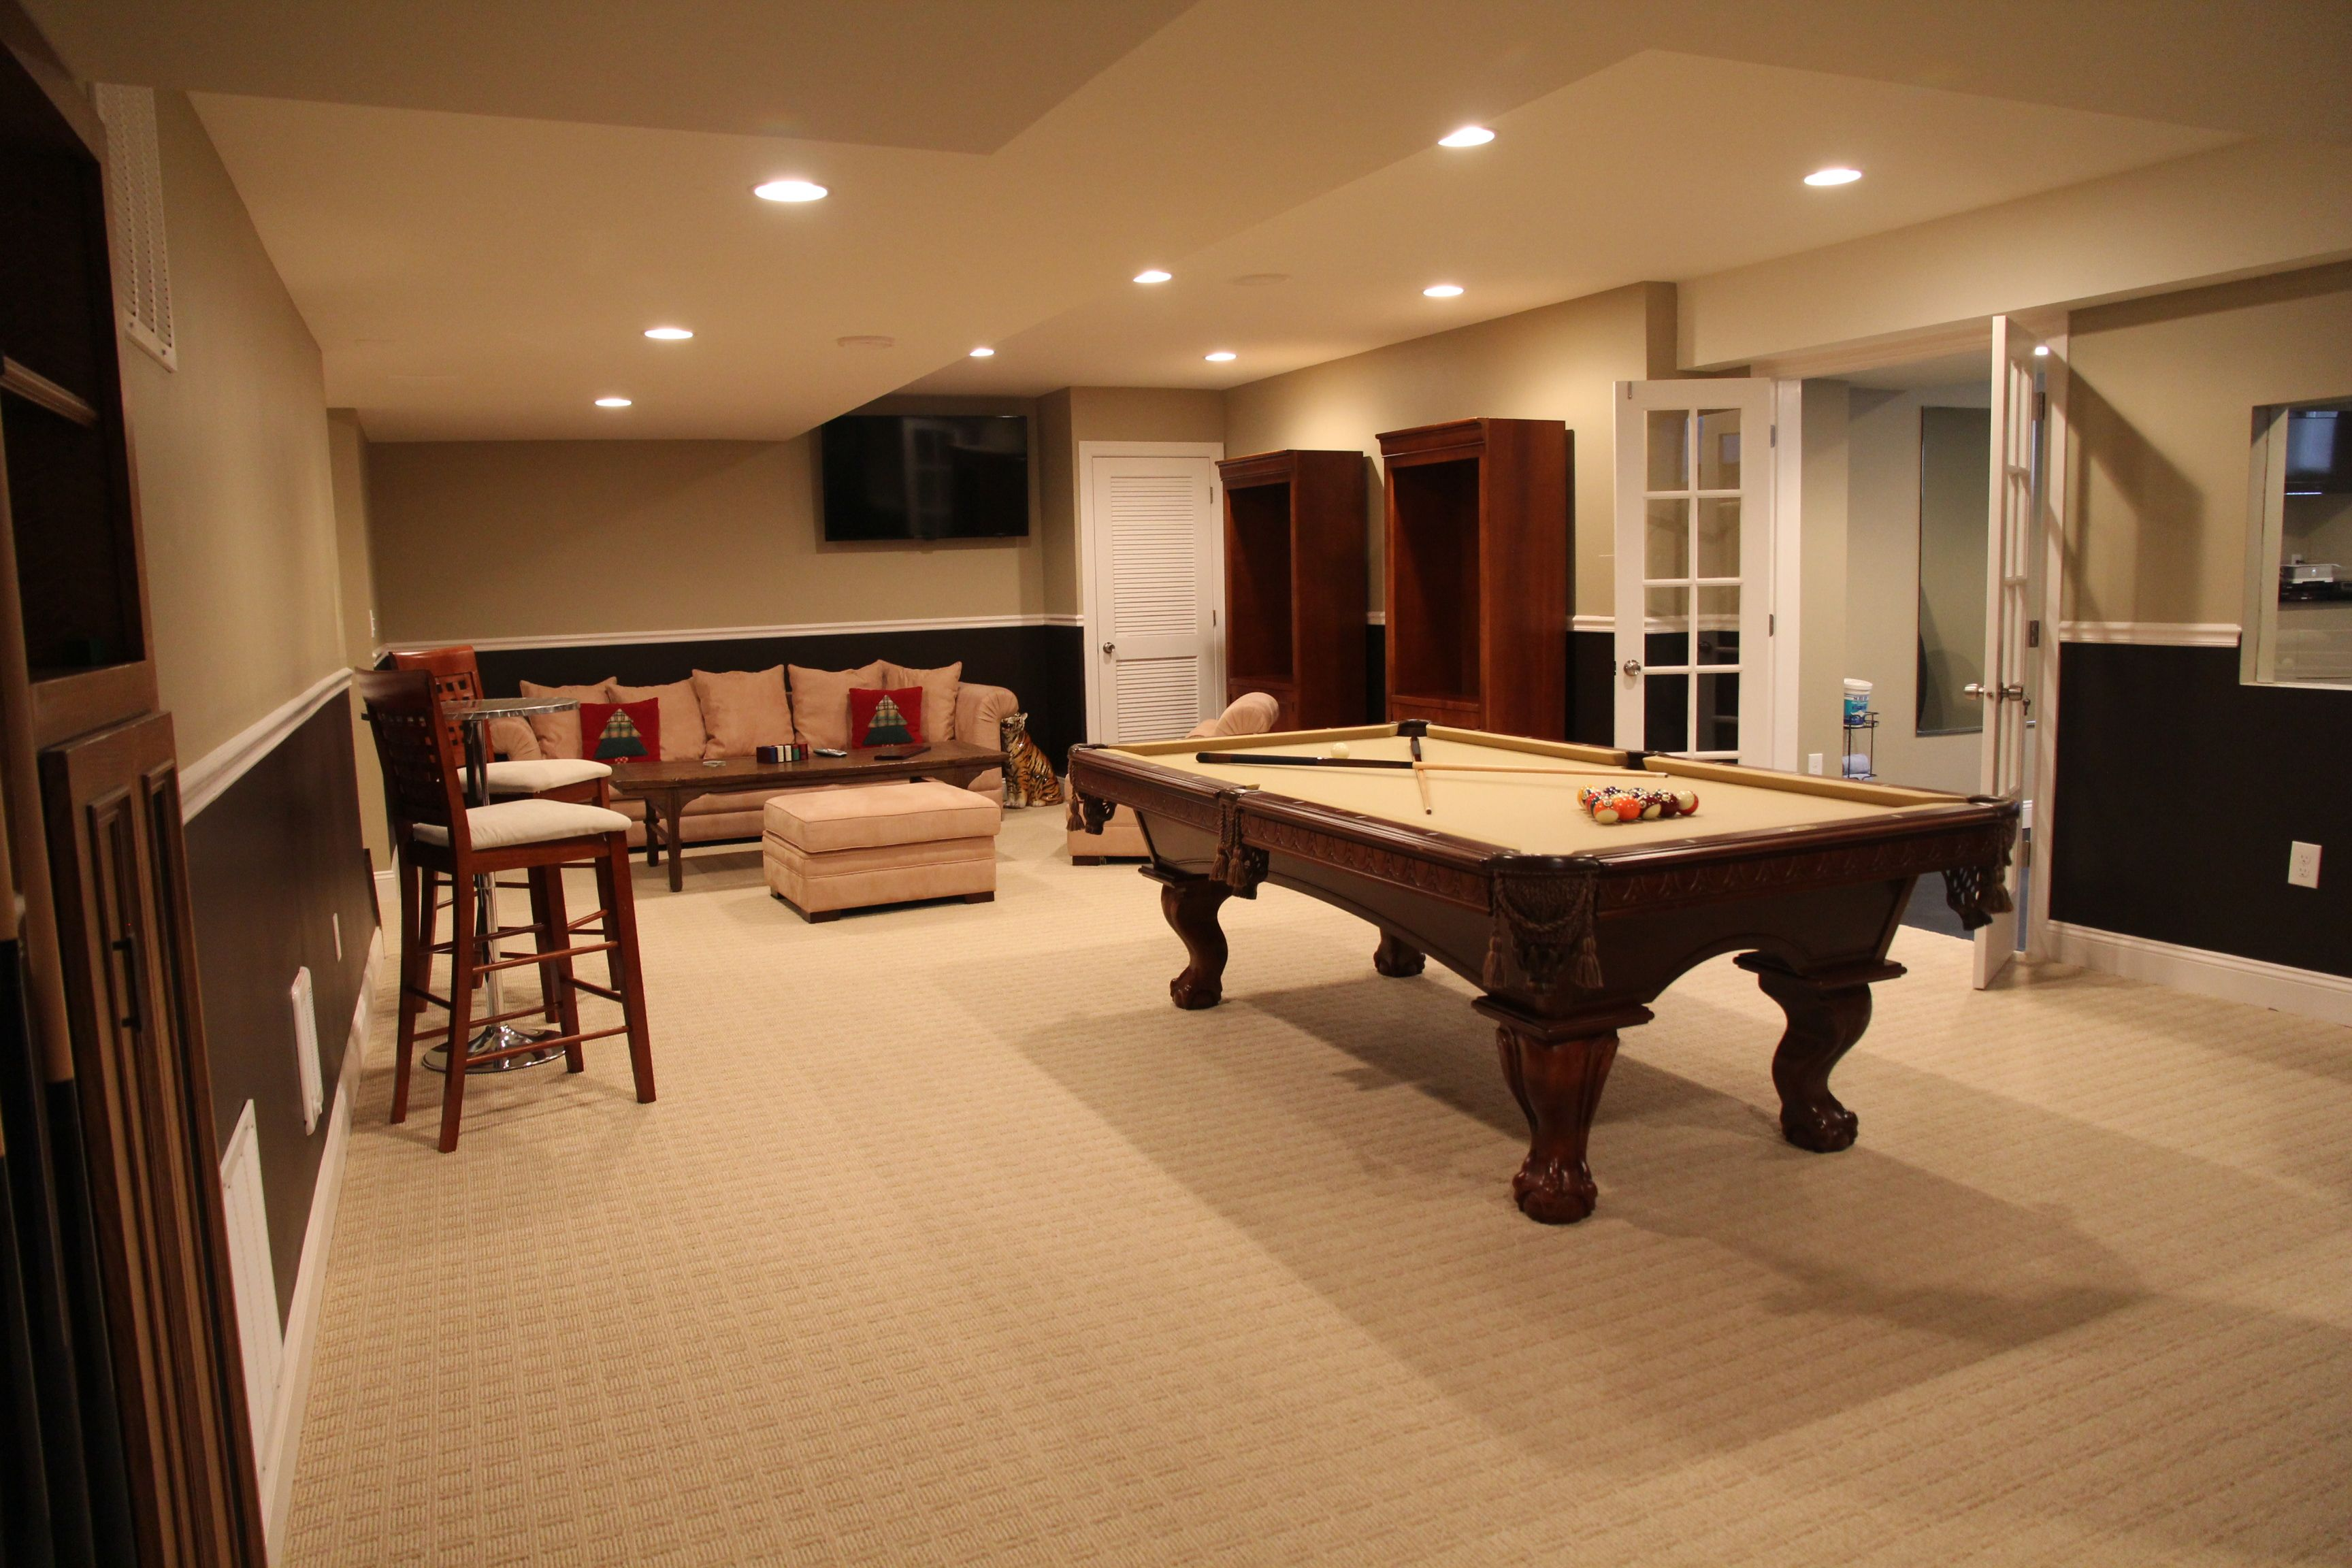 Pool Room Decorating Ideas would spring for the pool table if my husband would let me decorate the room like Decorating Ideas For Bedroom Google Search